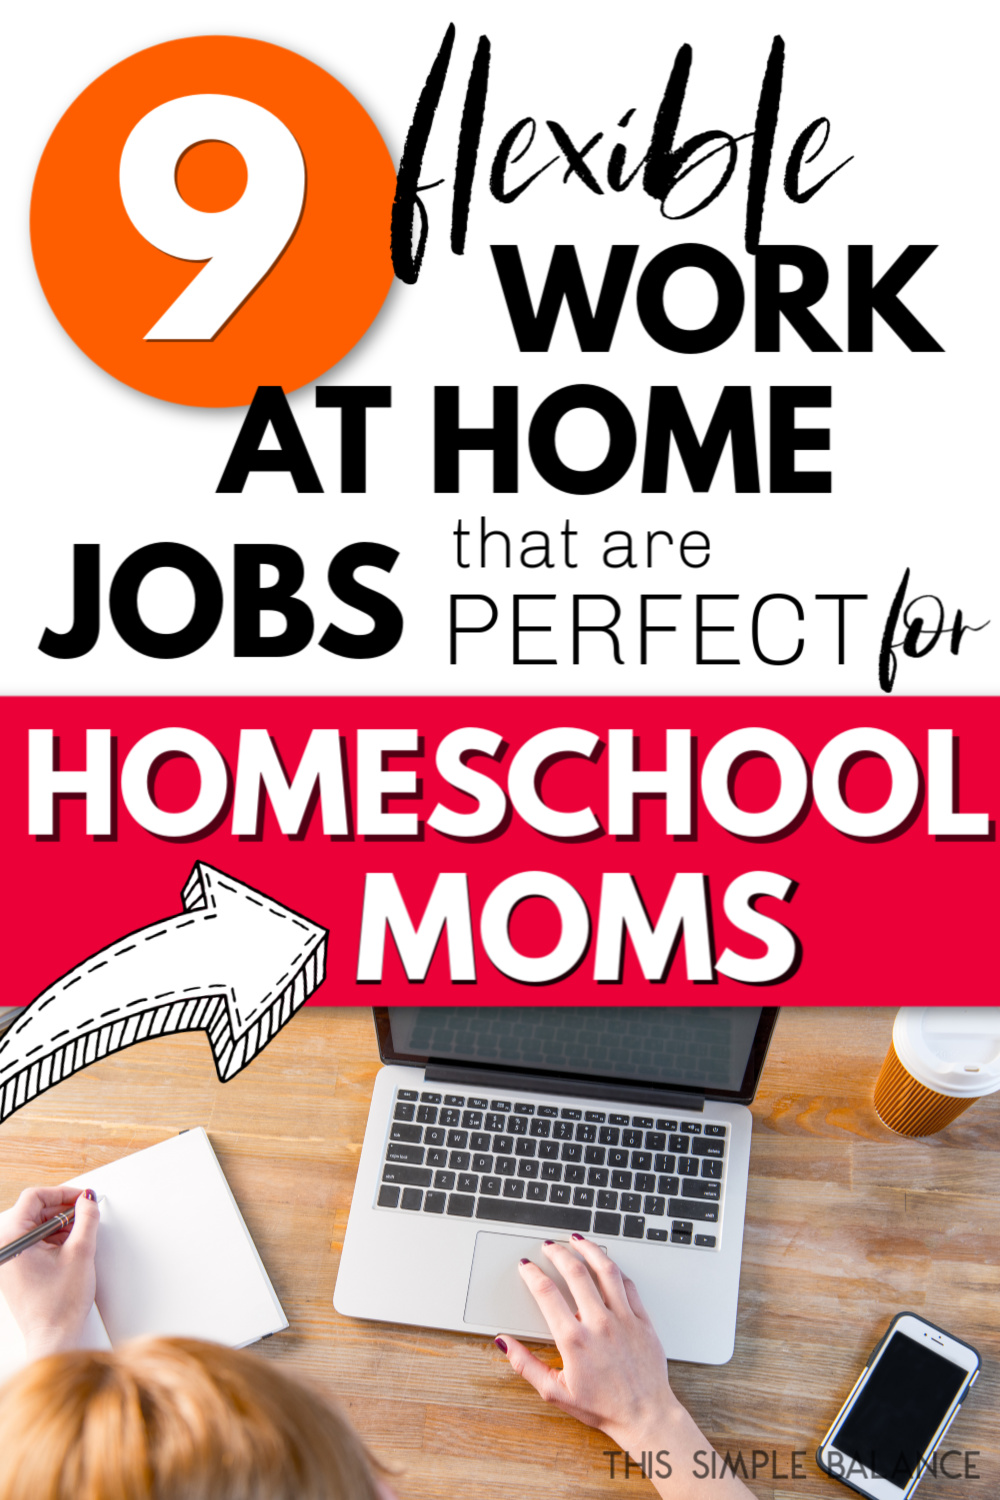 homeschool mom looking for a job online